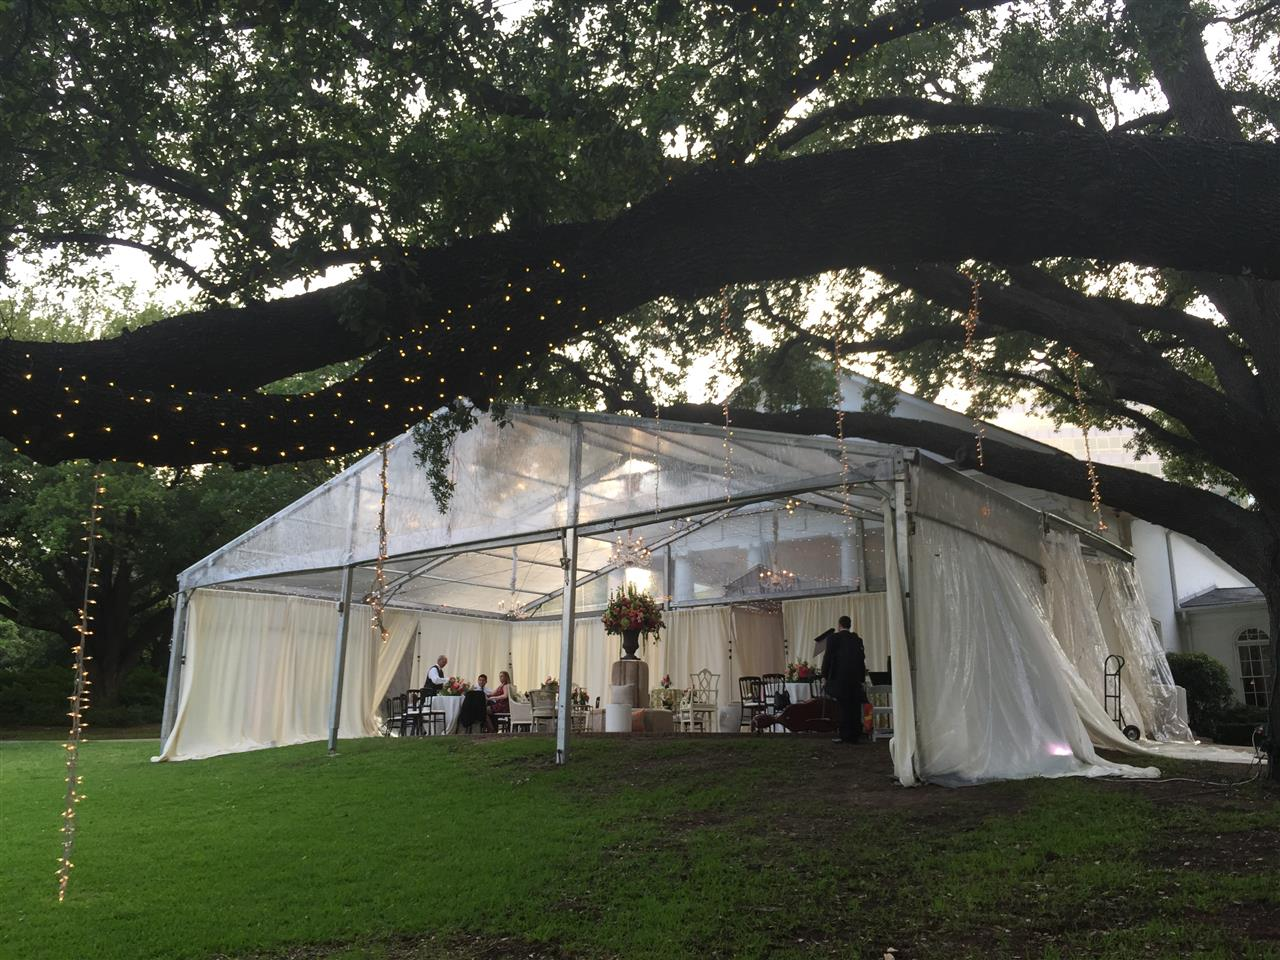 #Dallas, #Texas, Party tent on the lawn at Arlington Hall, Lee Park, #Turtle Creek